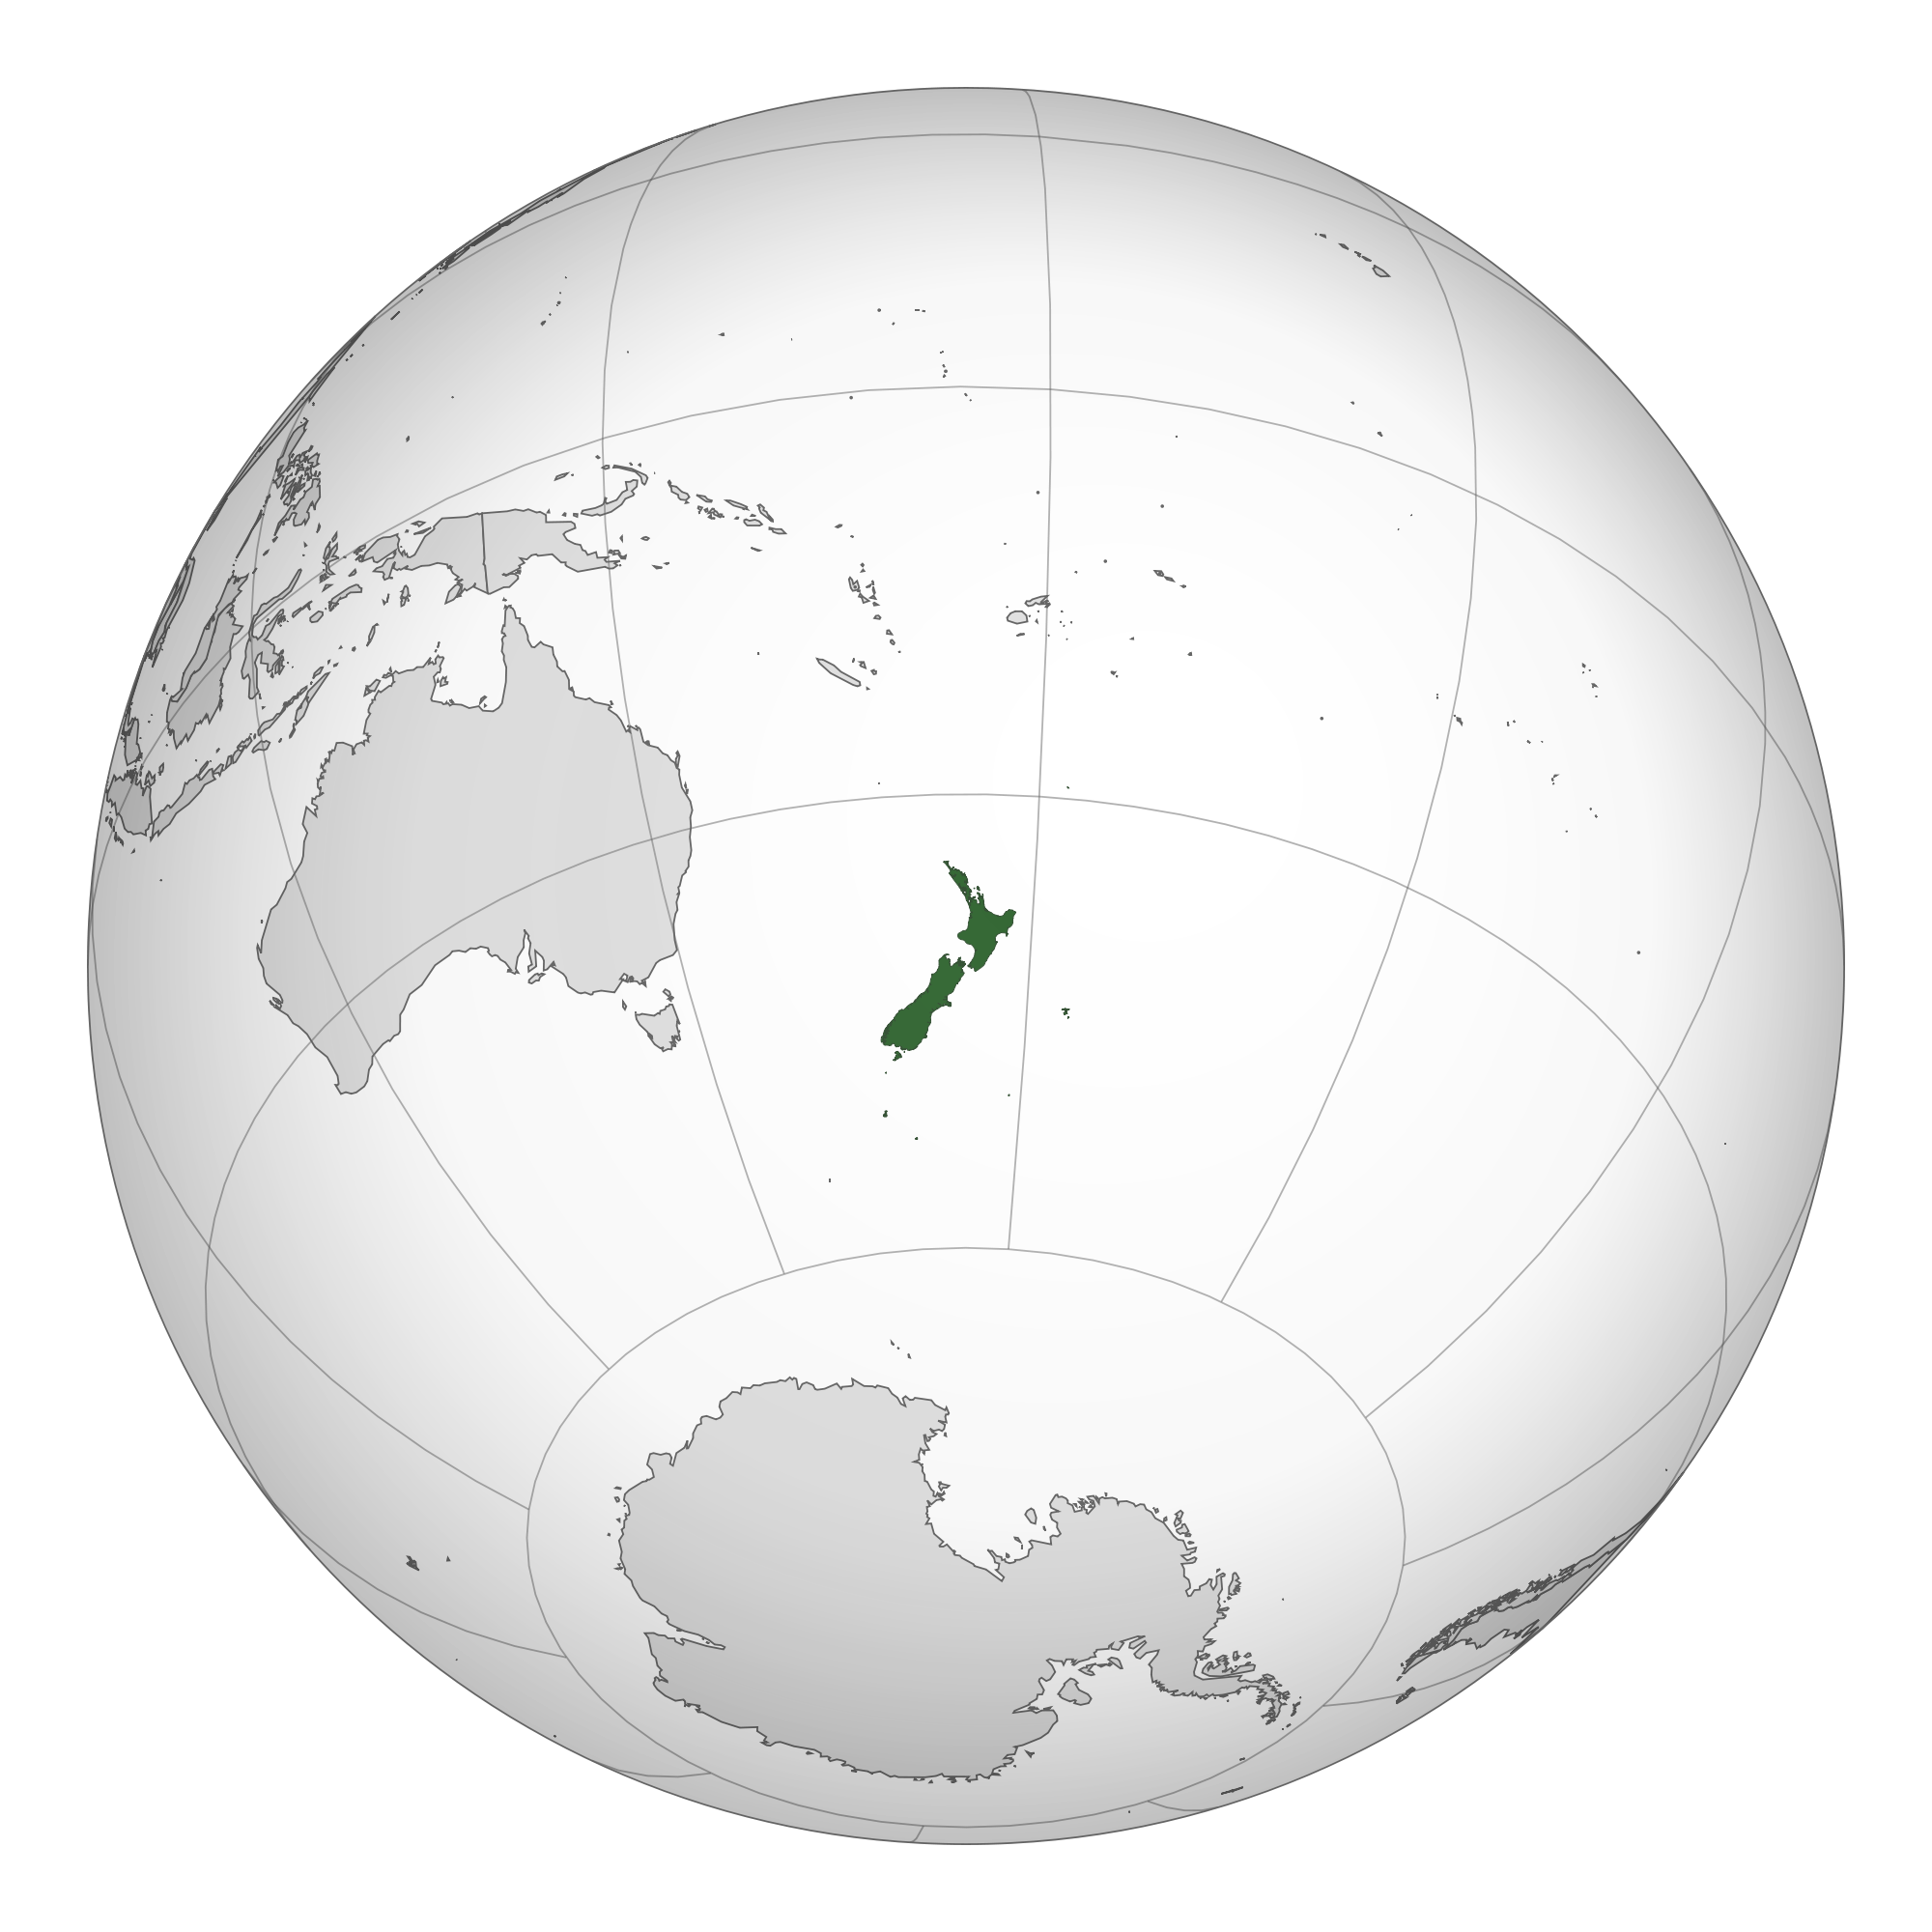 New zealand world map new zealand location on the world map new location of the new zealand in the world map gumiabroncs Choice Image